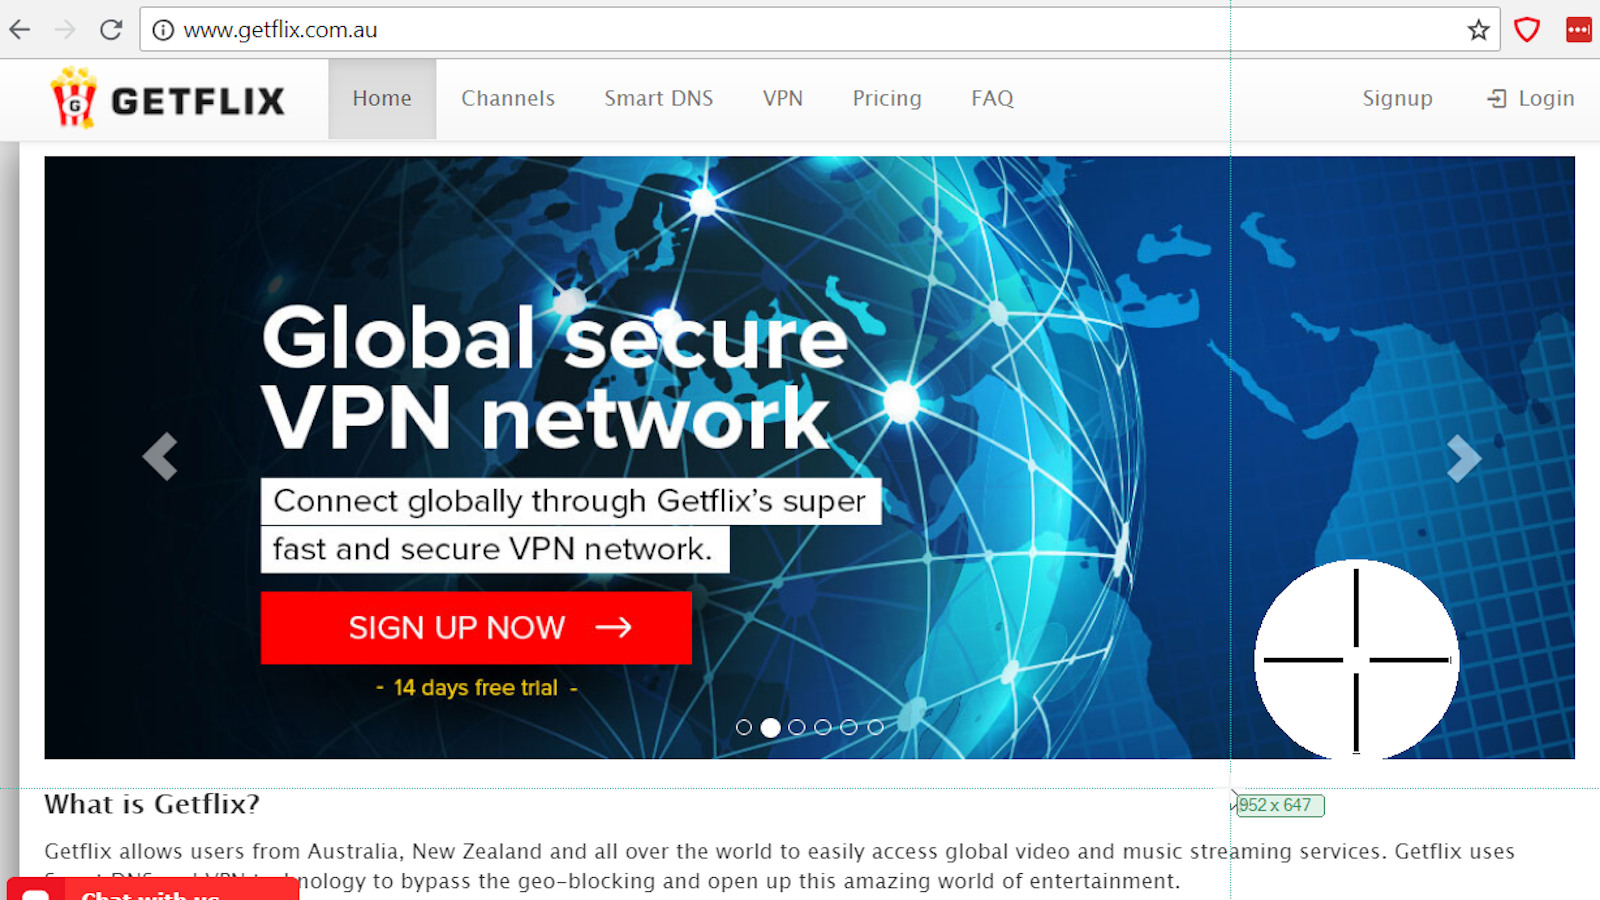 Getflix Smart DNS + VPN Review 2019 - Avoid This VPN At All